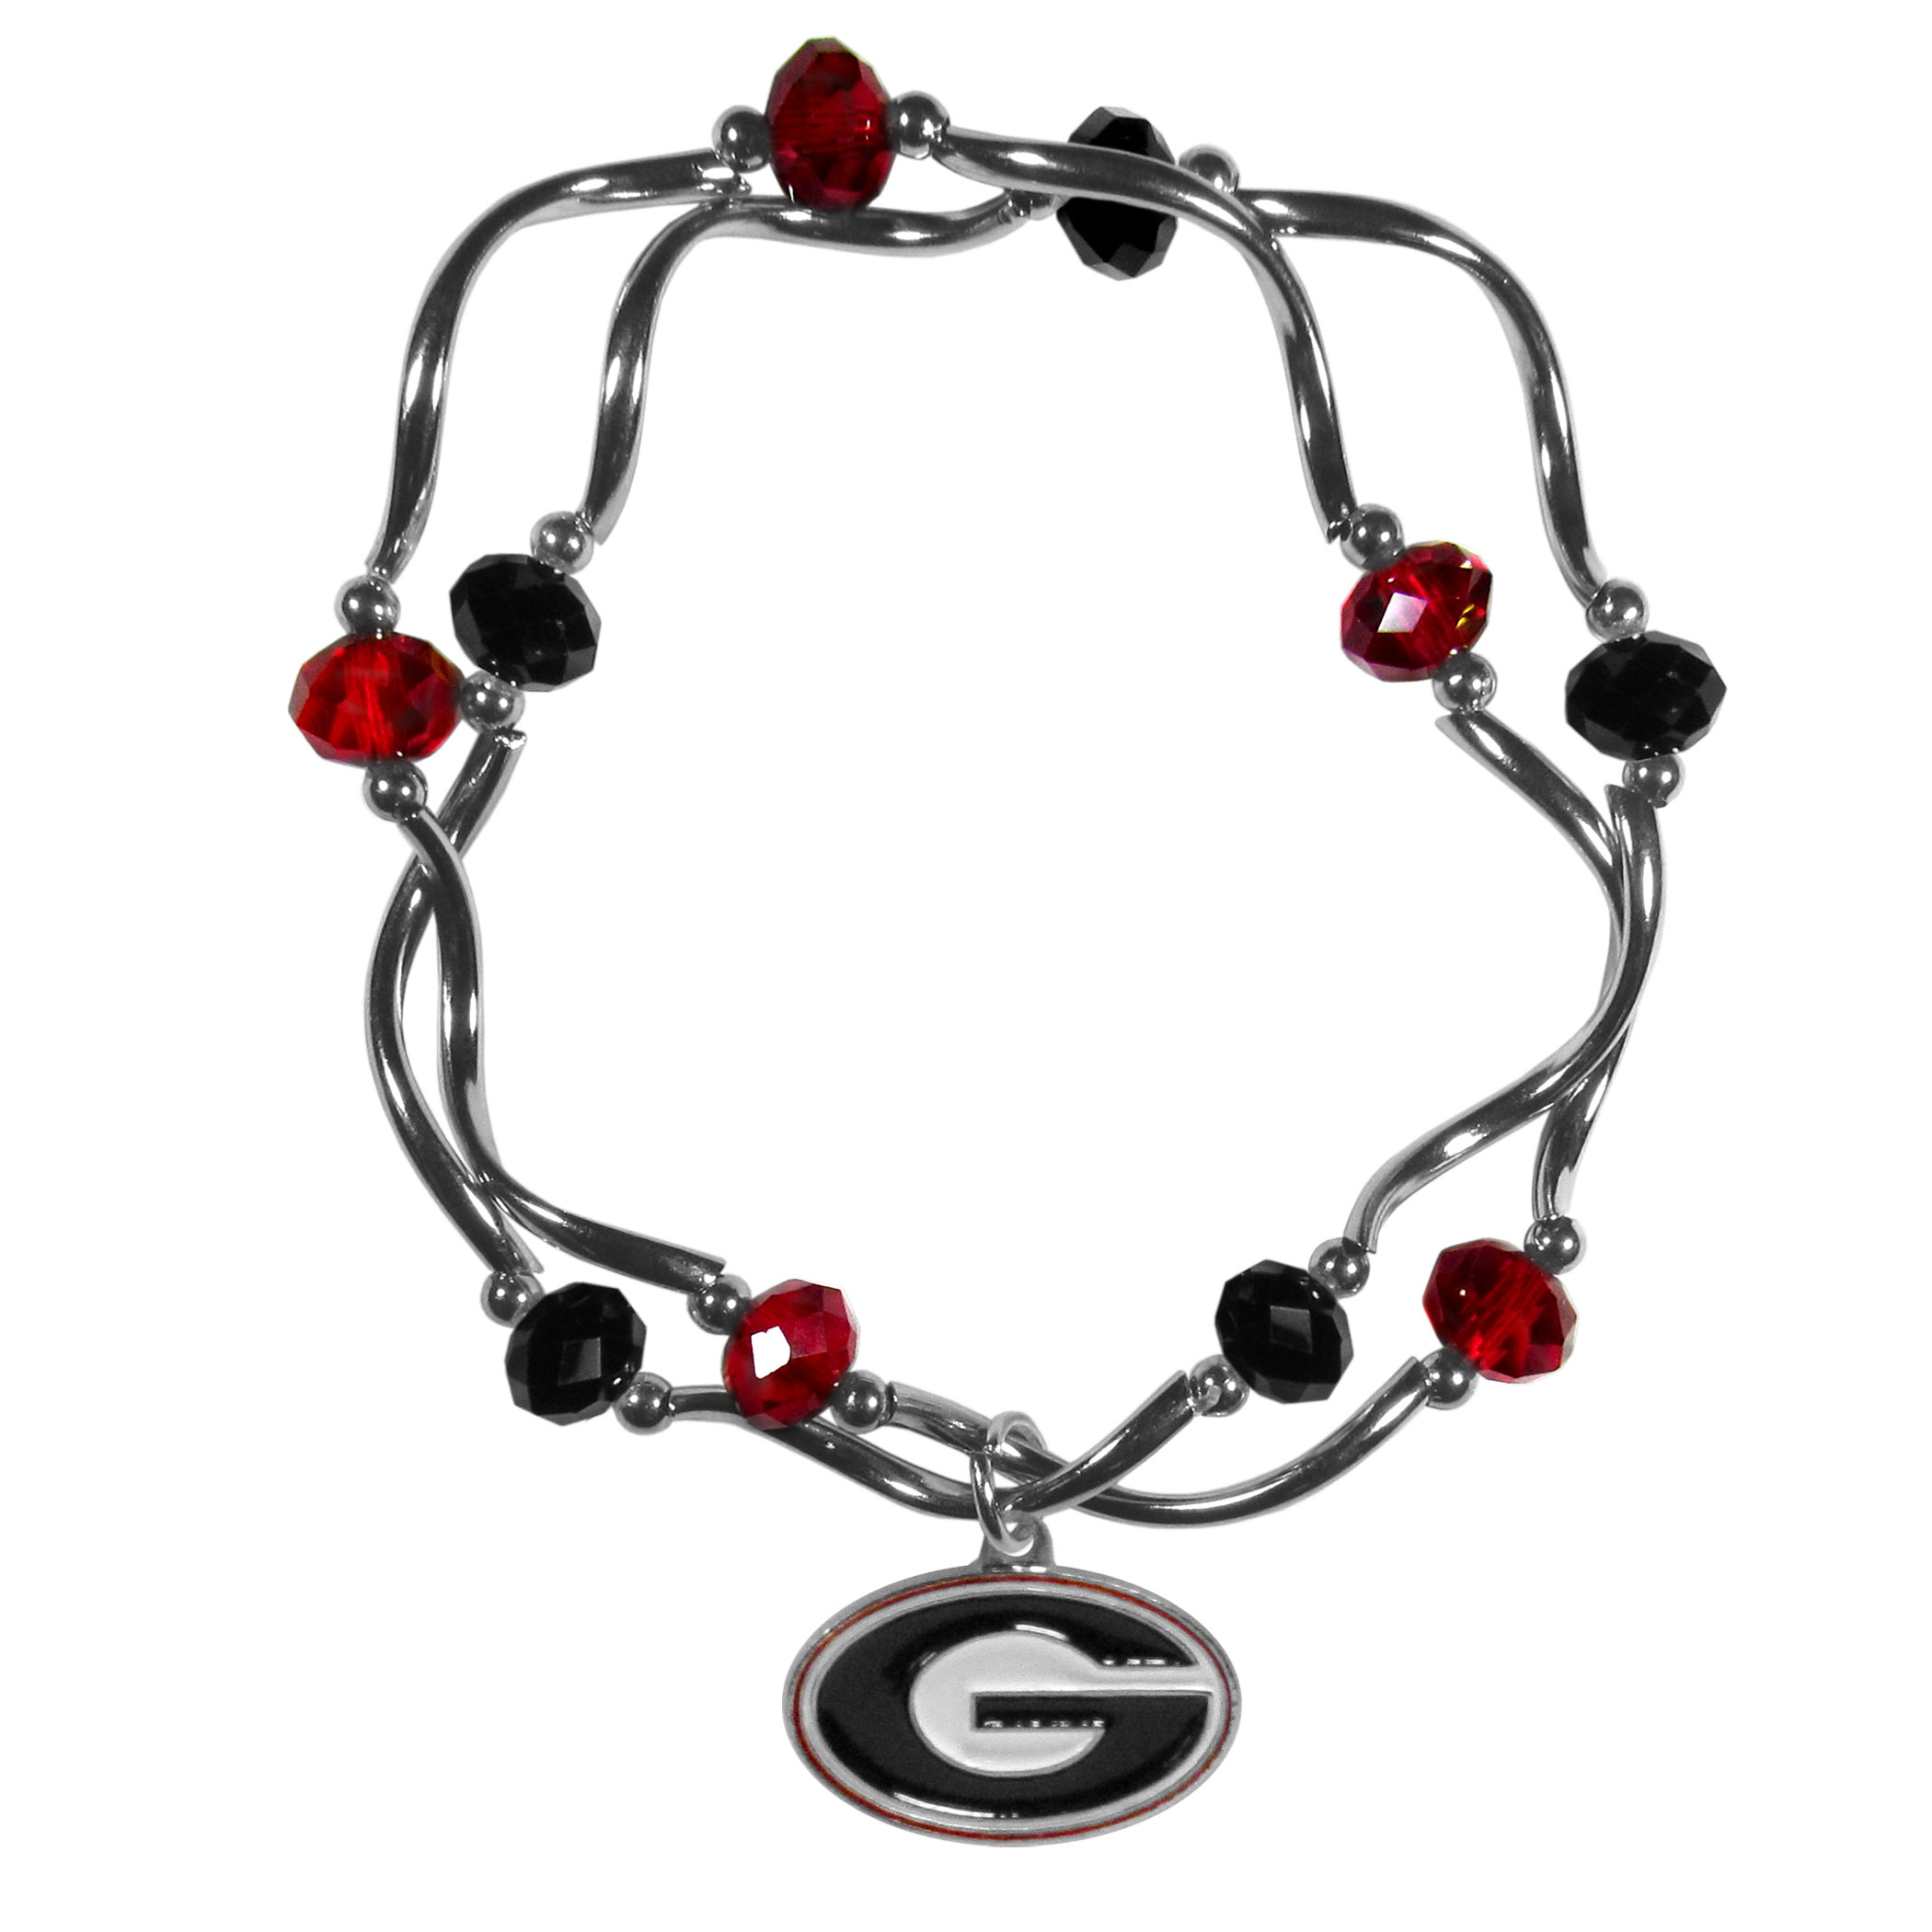 Georgia Bulldogs Crystal Bead Bracelet - This delicate bead bracelet has eye-catching team colored beads that are strung on 2 stretch cords that provide a comfortable and easy fit. The crystals are separated by beautiful helix beads in high polish chrome for a truly designer inspired look. The 2 strands of beads intertwine for a fun and stylish bracelet. This chic accessory is finished off with a Georgia Bulldogs team charm that has expertly carved detail and an enameled color finish. A contemporary look to thrill any female sports fan. Whether this a gift for yourself or someone special you cannot miss with this trend-setting fashion bracelet.